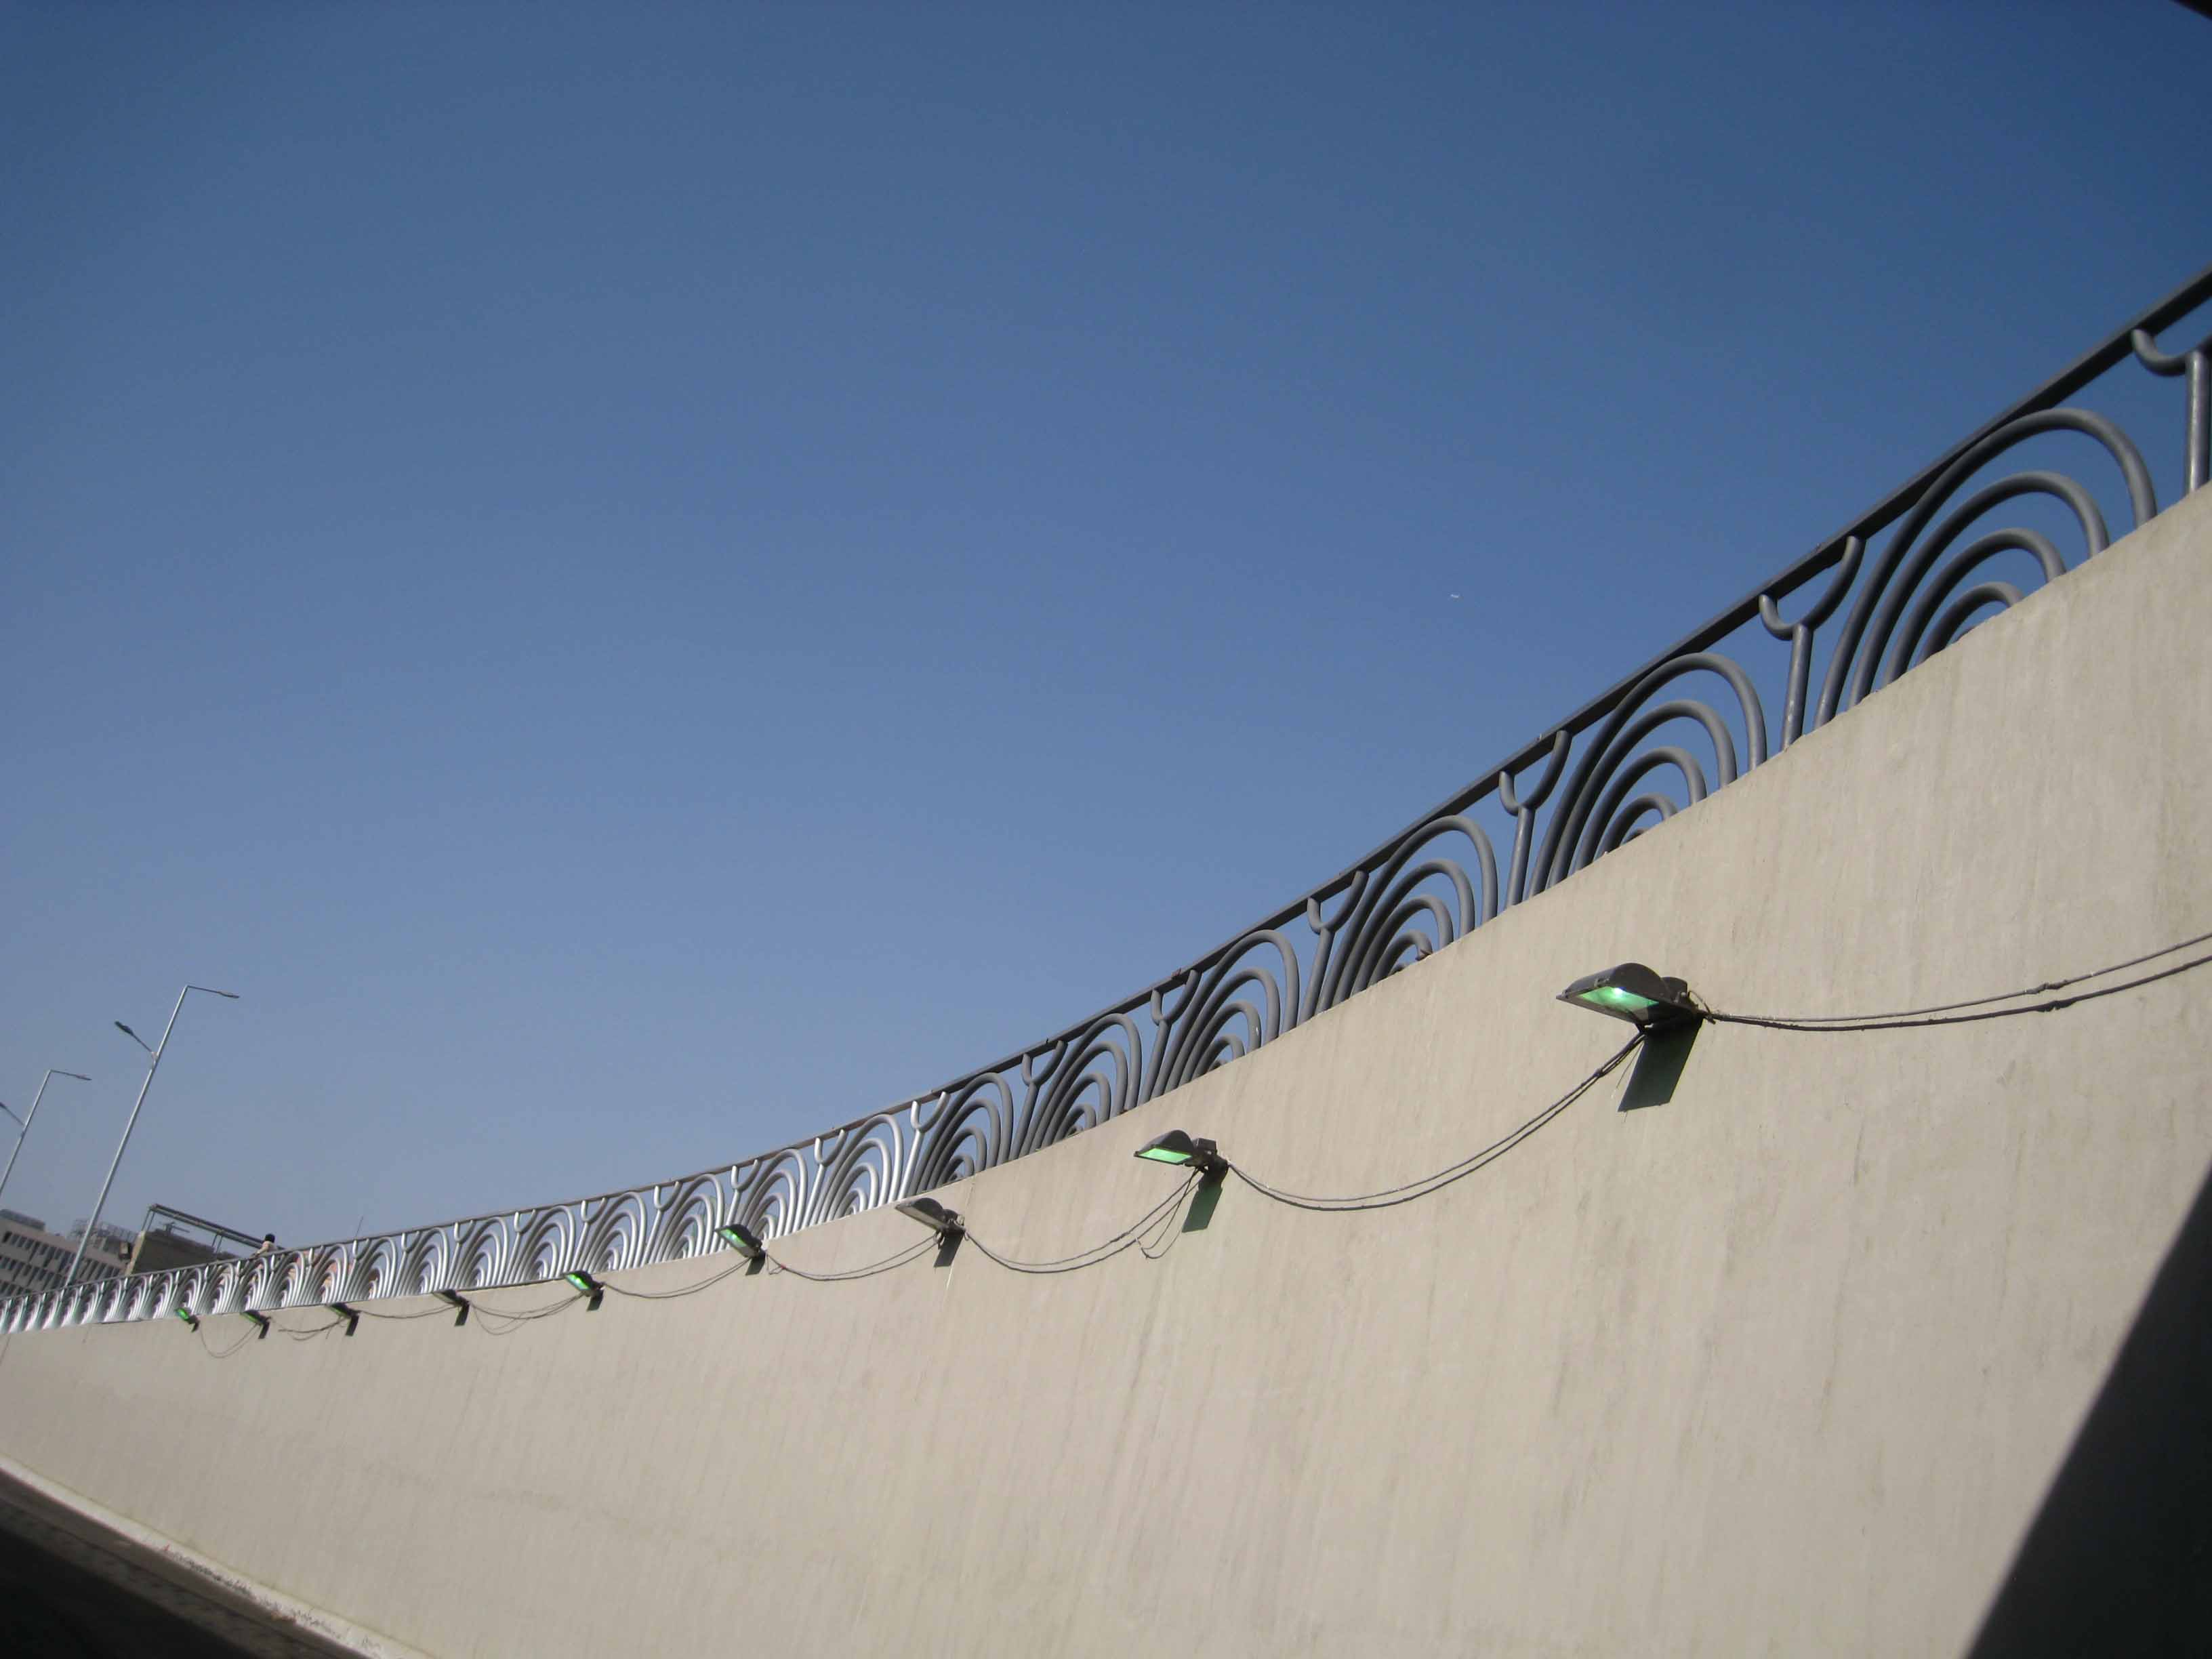 Handrail of Downtown tunnel project (21)